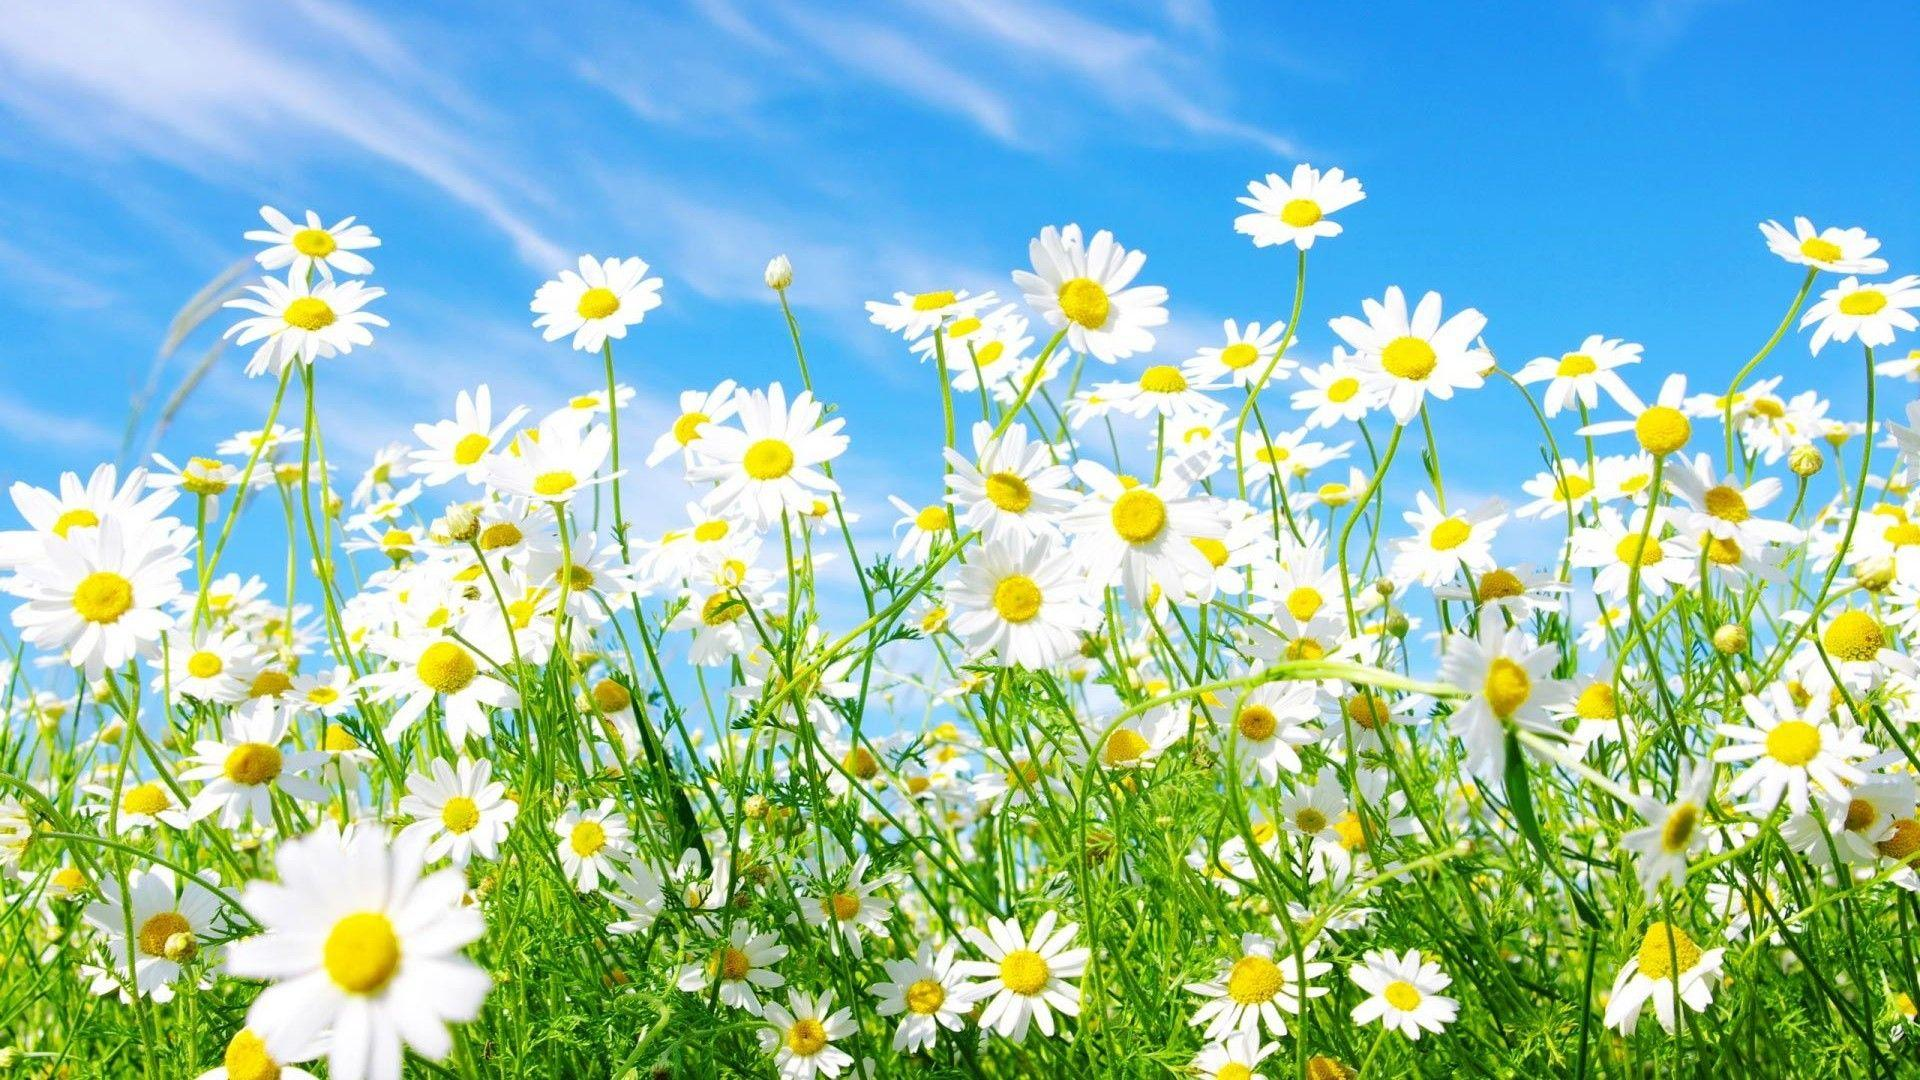 HD Spring Flowers Backgrounds